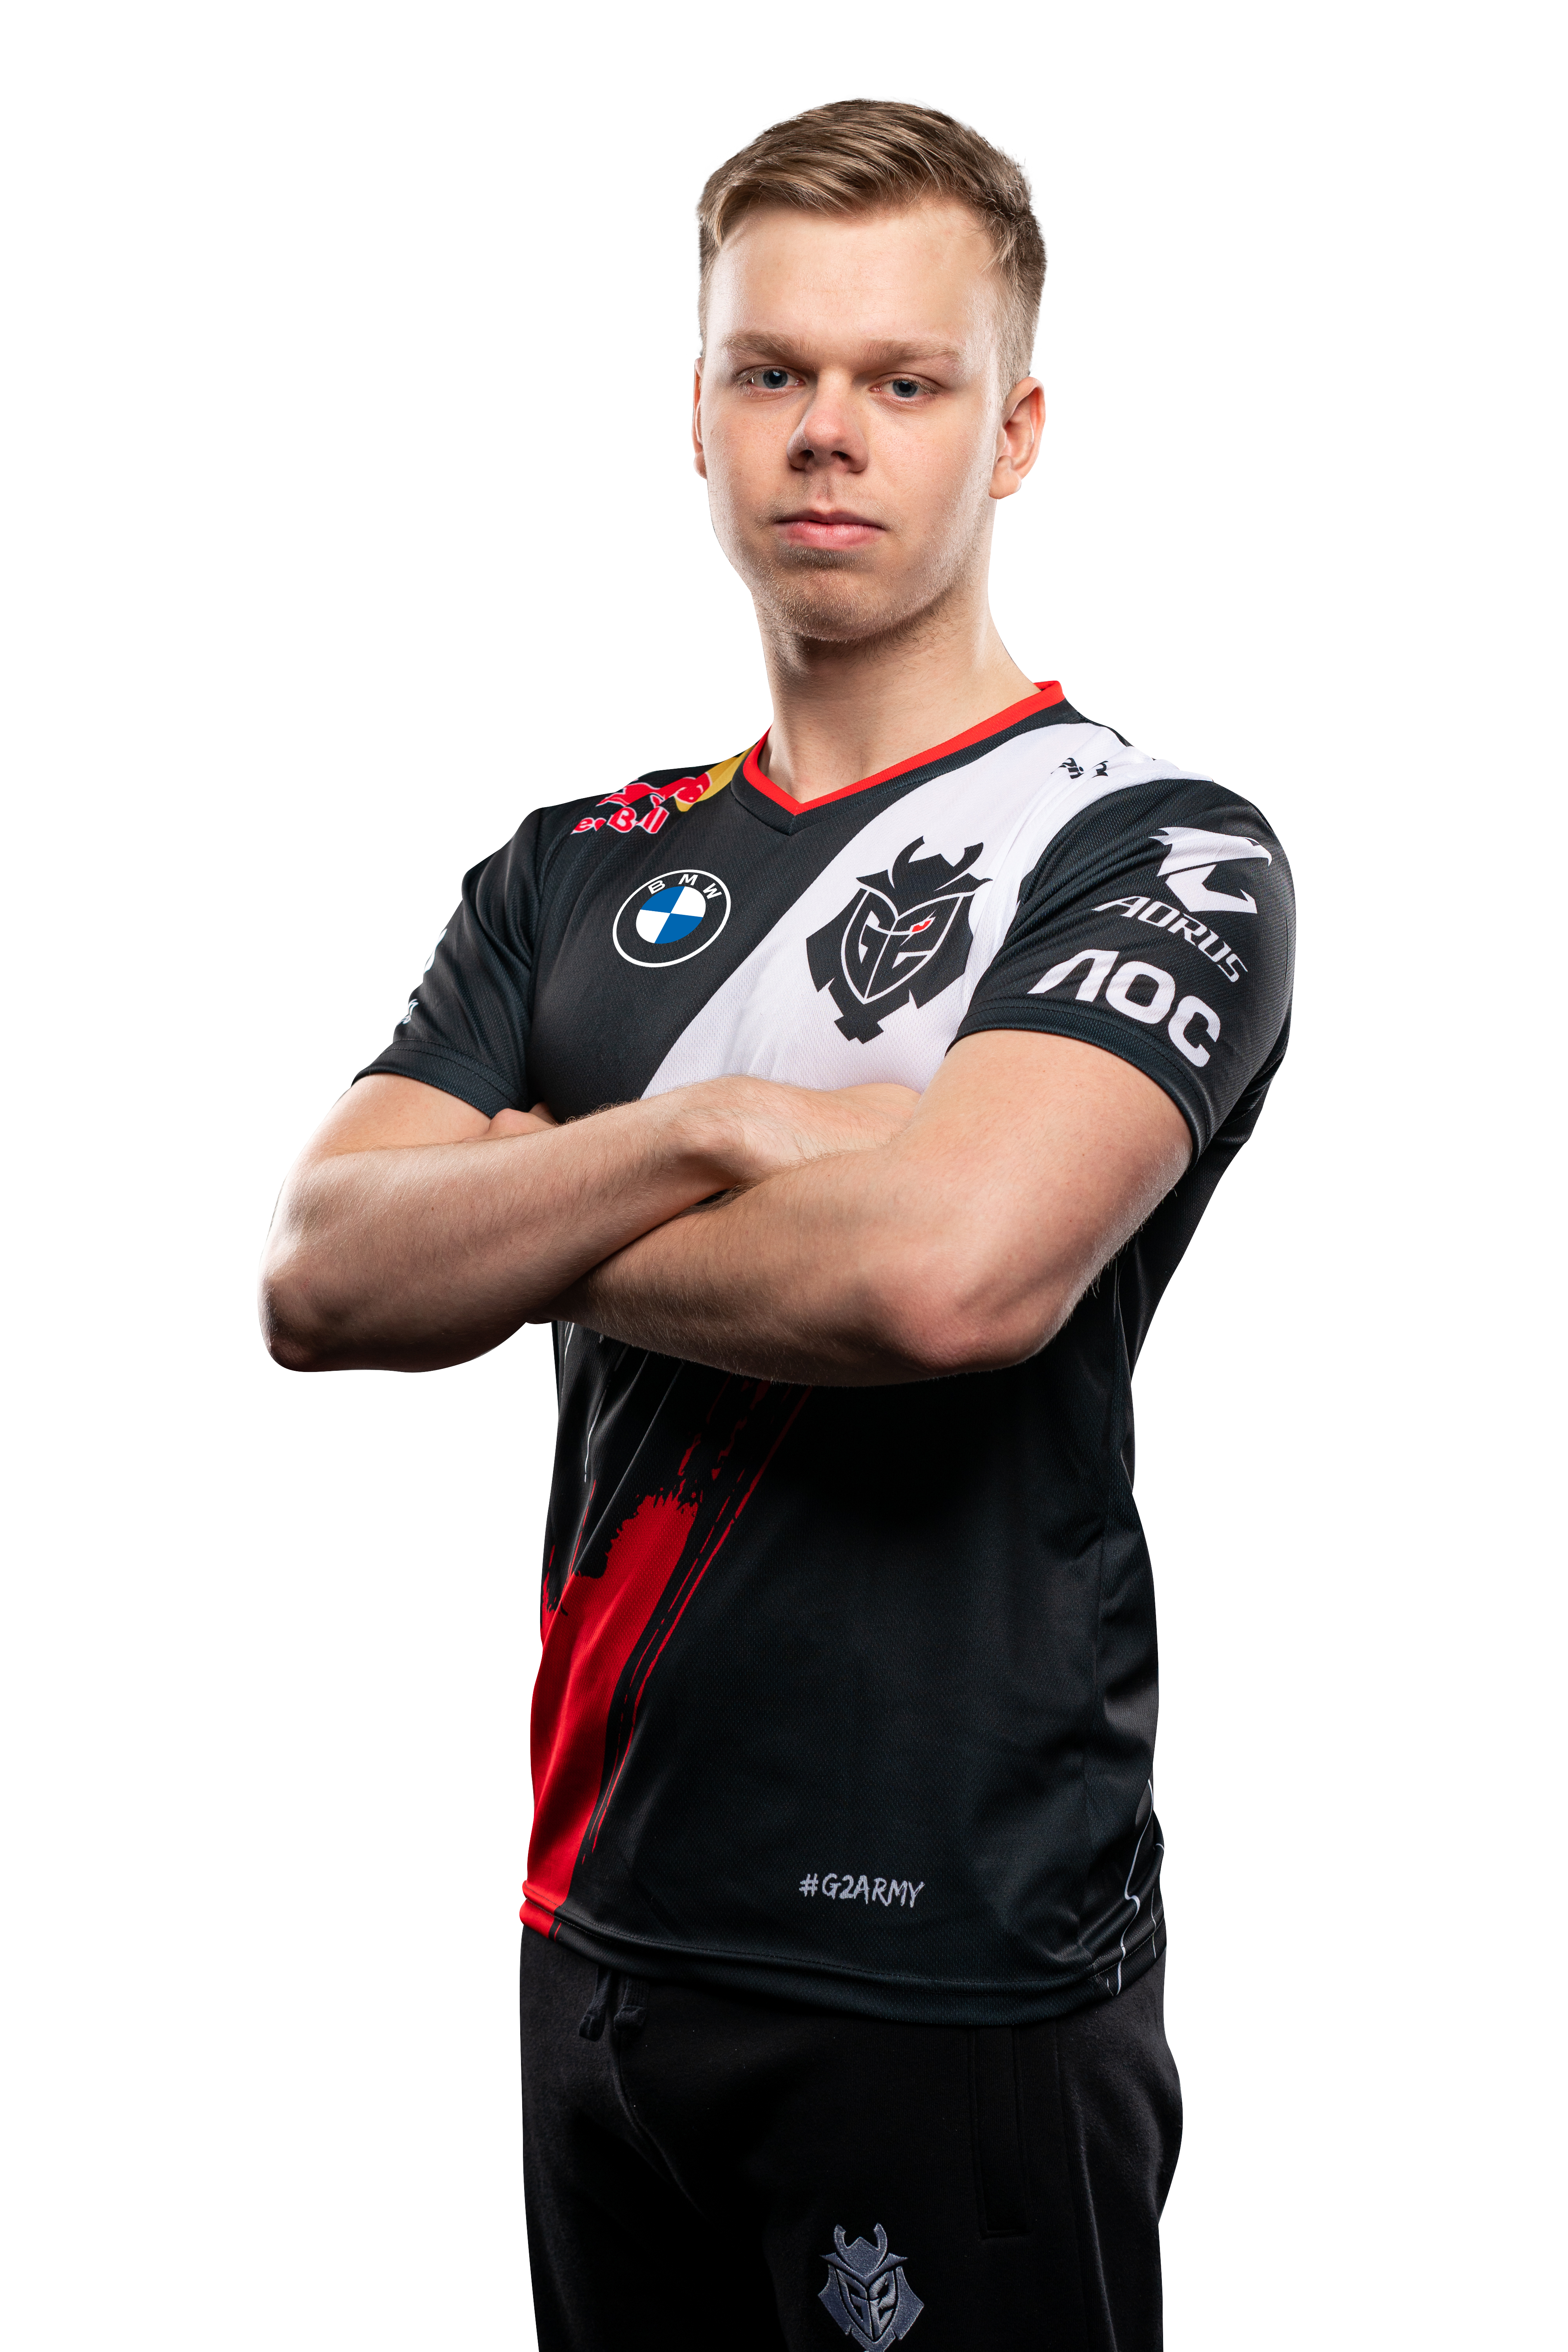 G2 Esports star Wunder poses with his arms crossed